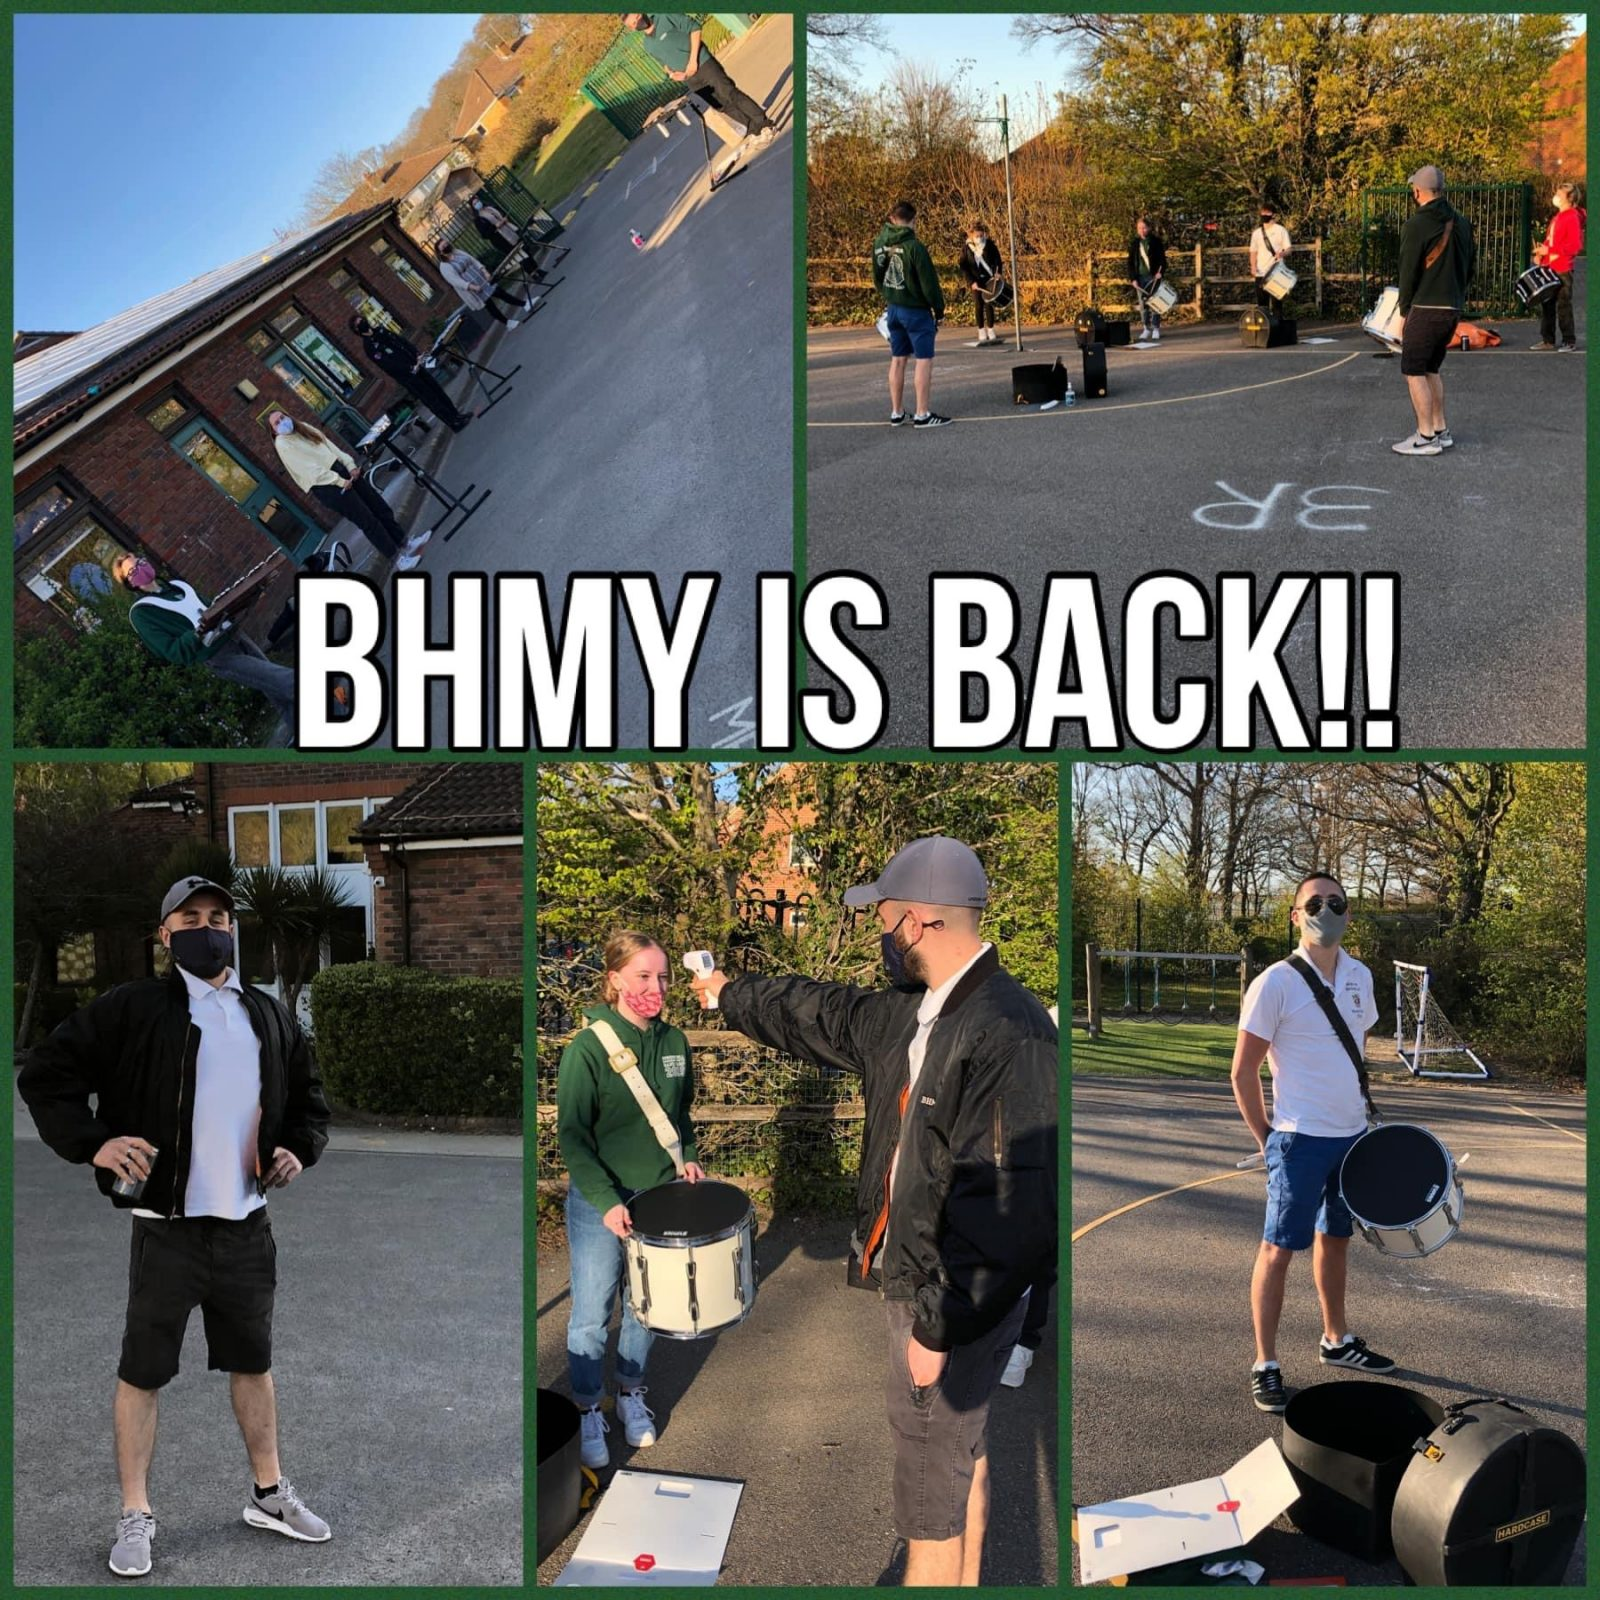 BHMY IS BACK!!